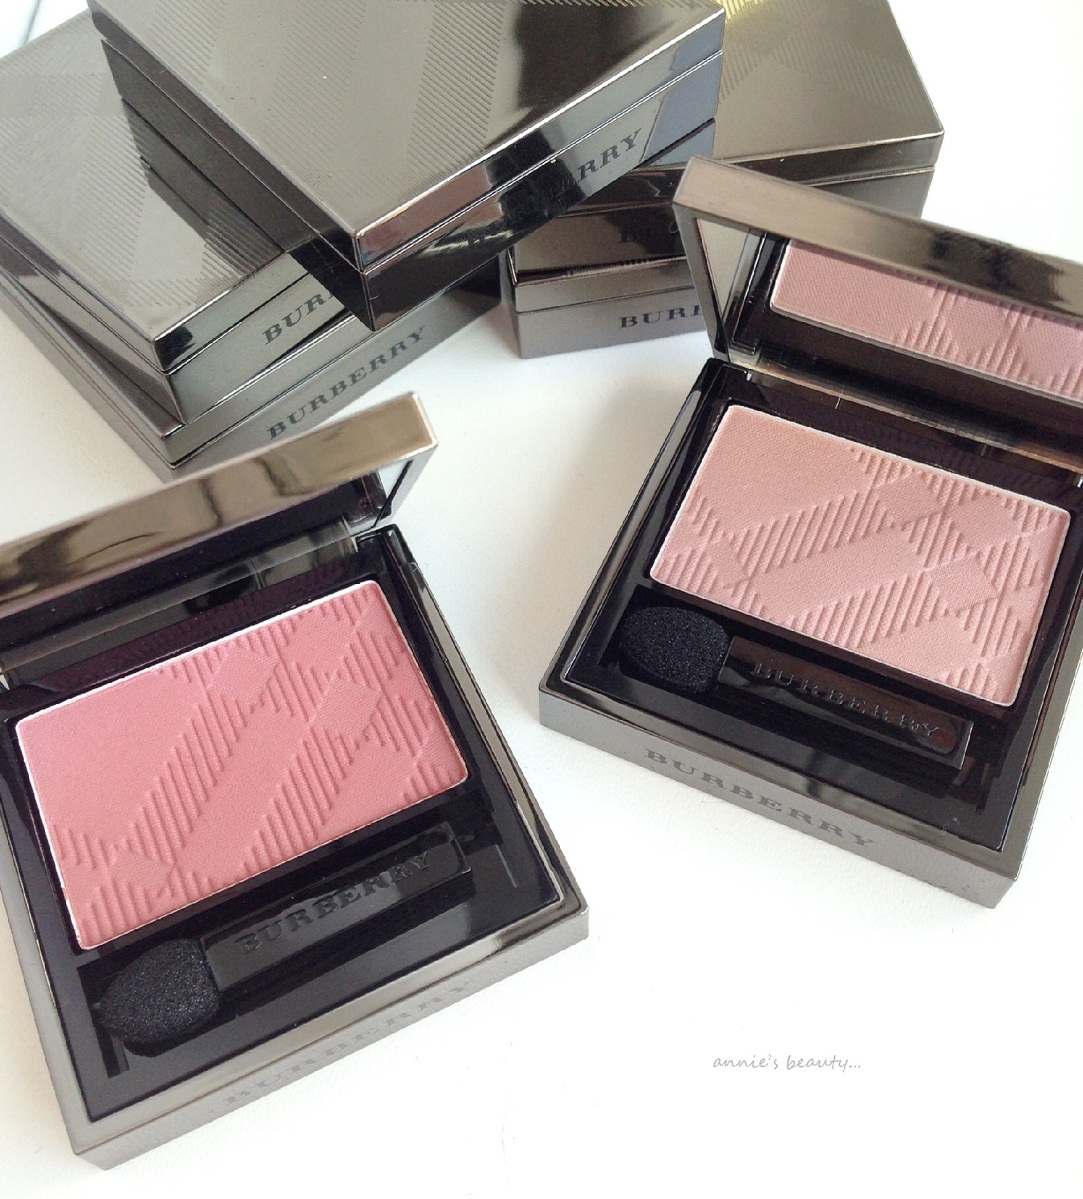 BREAKING NEWS! BURBERRY launches two more eyeshadows in a NEW formula: EYE COLOUR SILK #200 TEA ROSE and #201 ROSE PINK